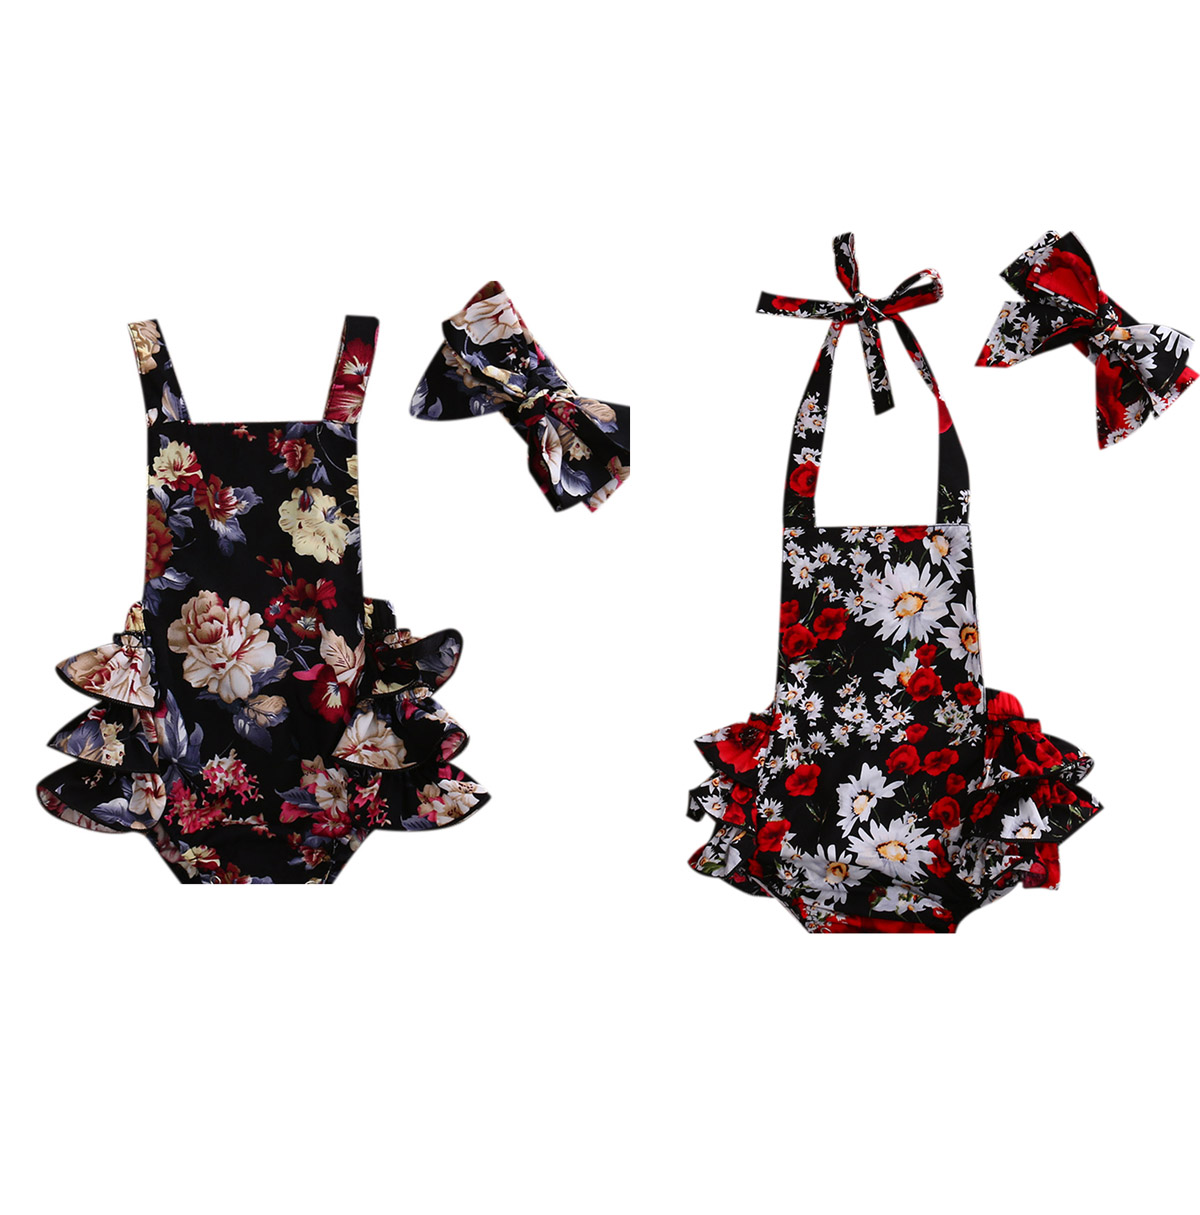 Newborn Infant Baby Clothes Girl Lace Strap Floral Romper Jumpsuit + Headband 2pcs Summer Baby Girl Romper Clothes Baby Onesie newborn infant baby clothes girl floral strap lace romper jumpsuit playsuit outfit cute summer baby romper onesie